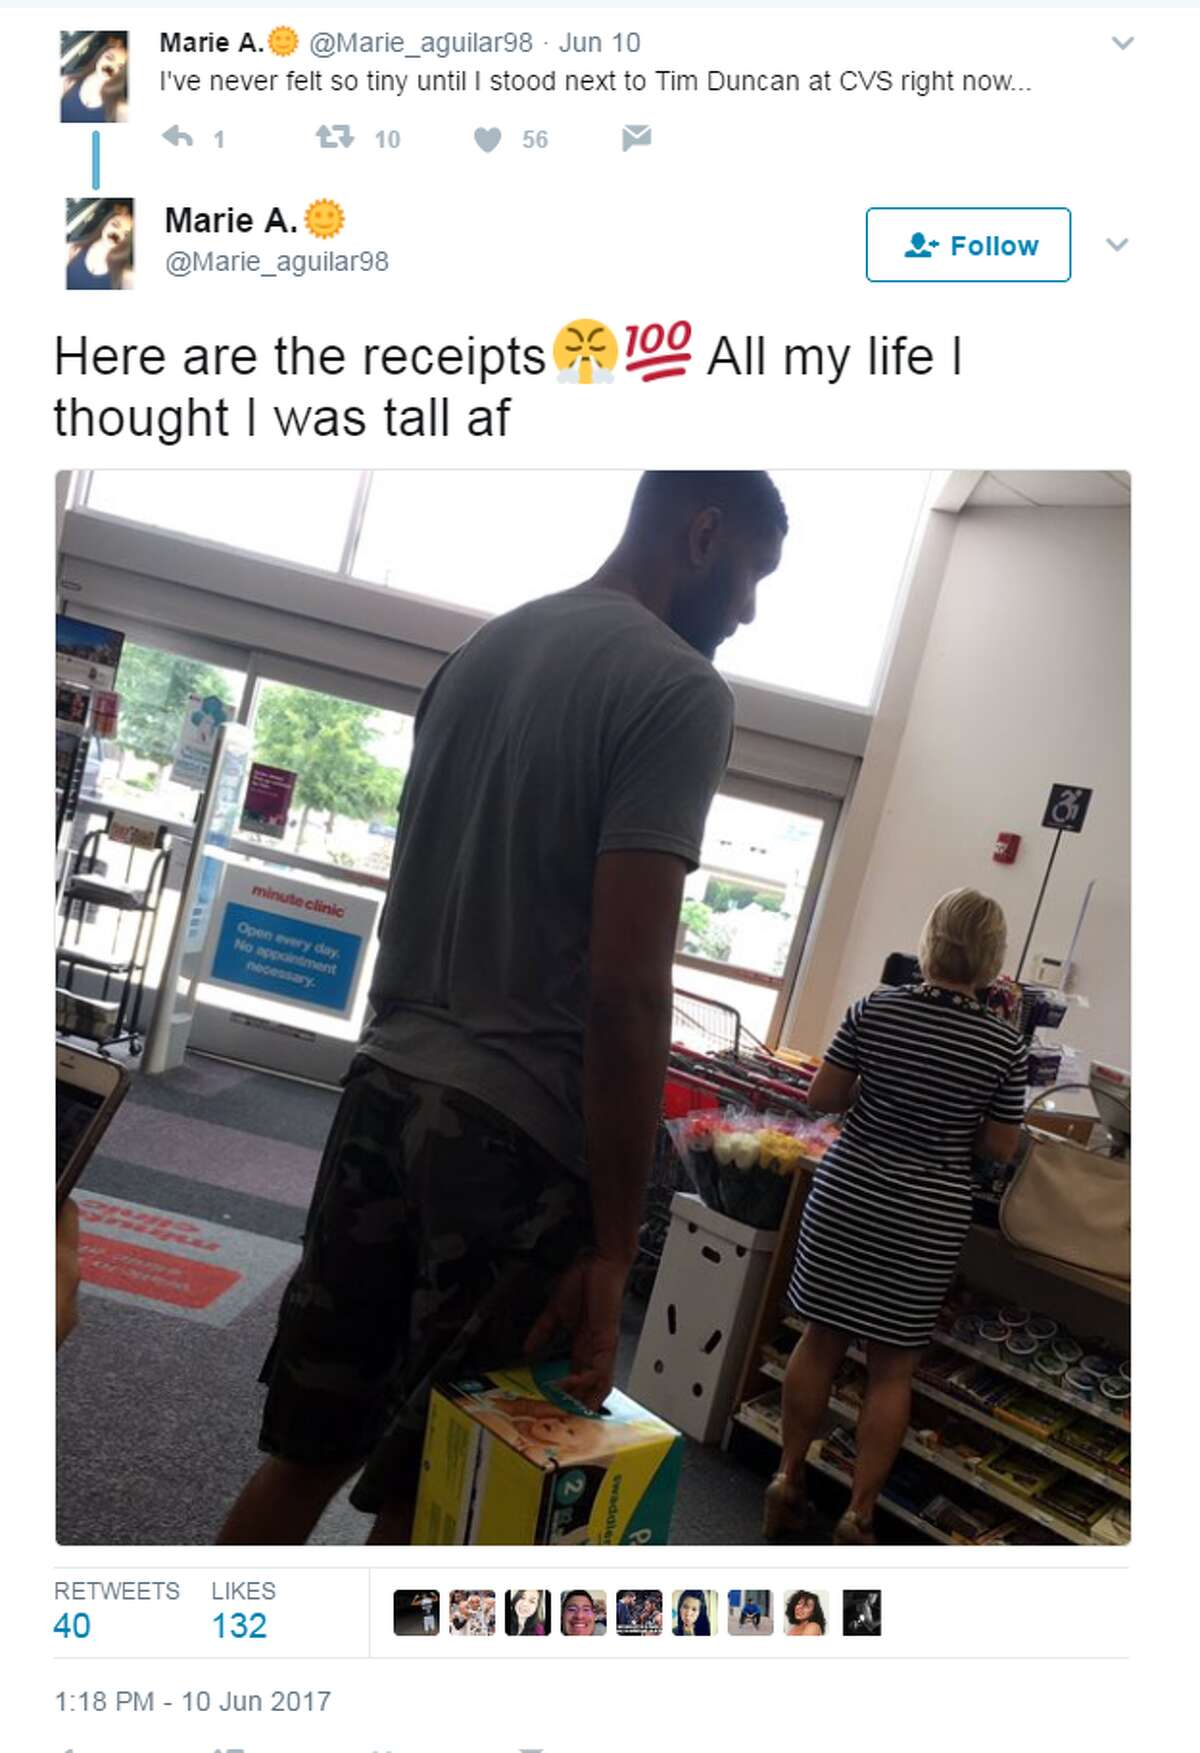 Screengrab of a tweet showing Tim Duncan at a CVS near the Dominion on June 10, 2017.